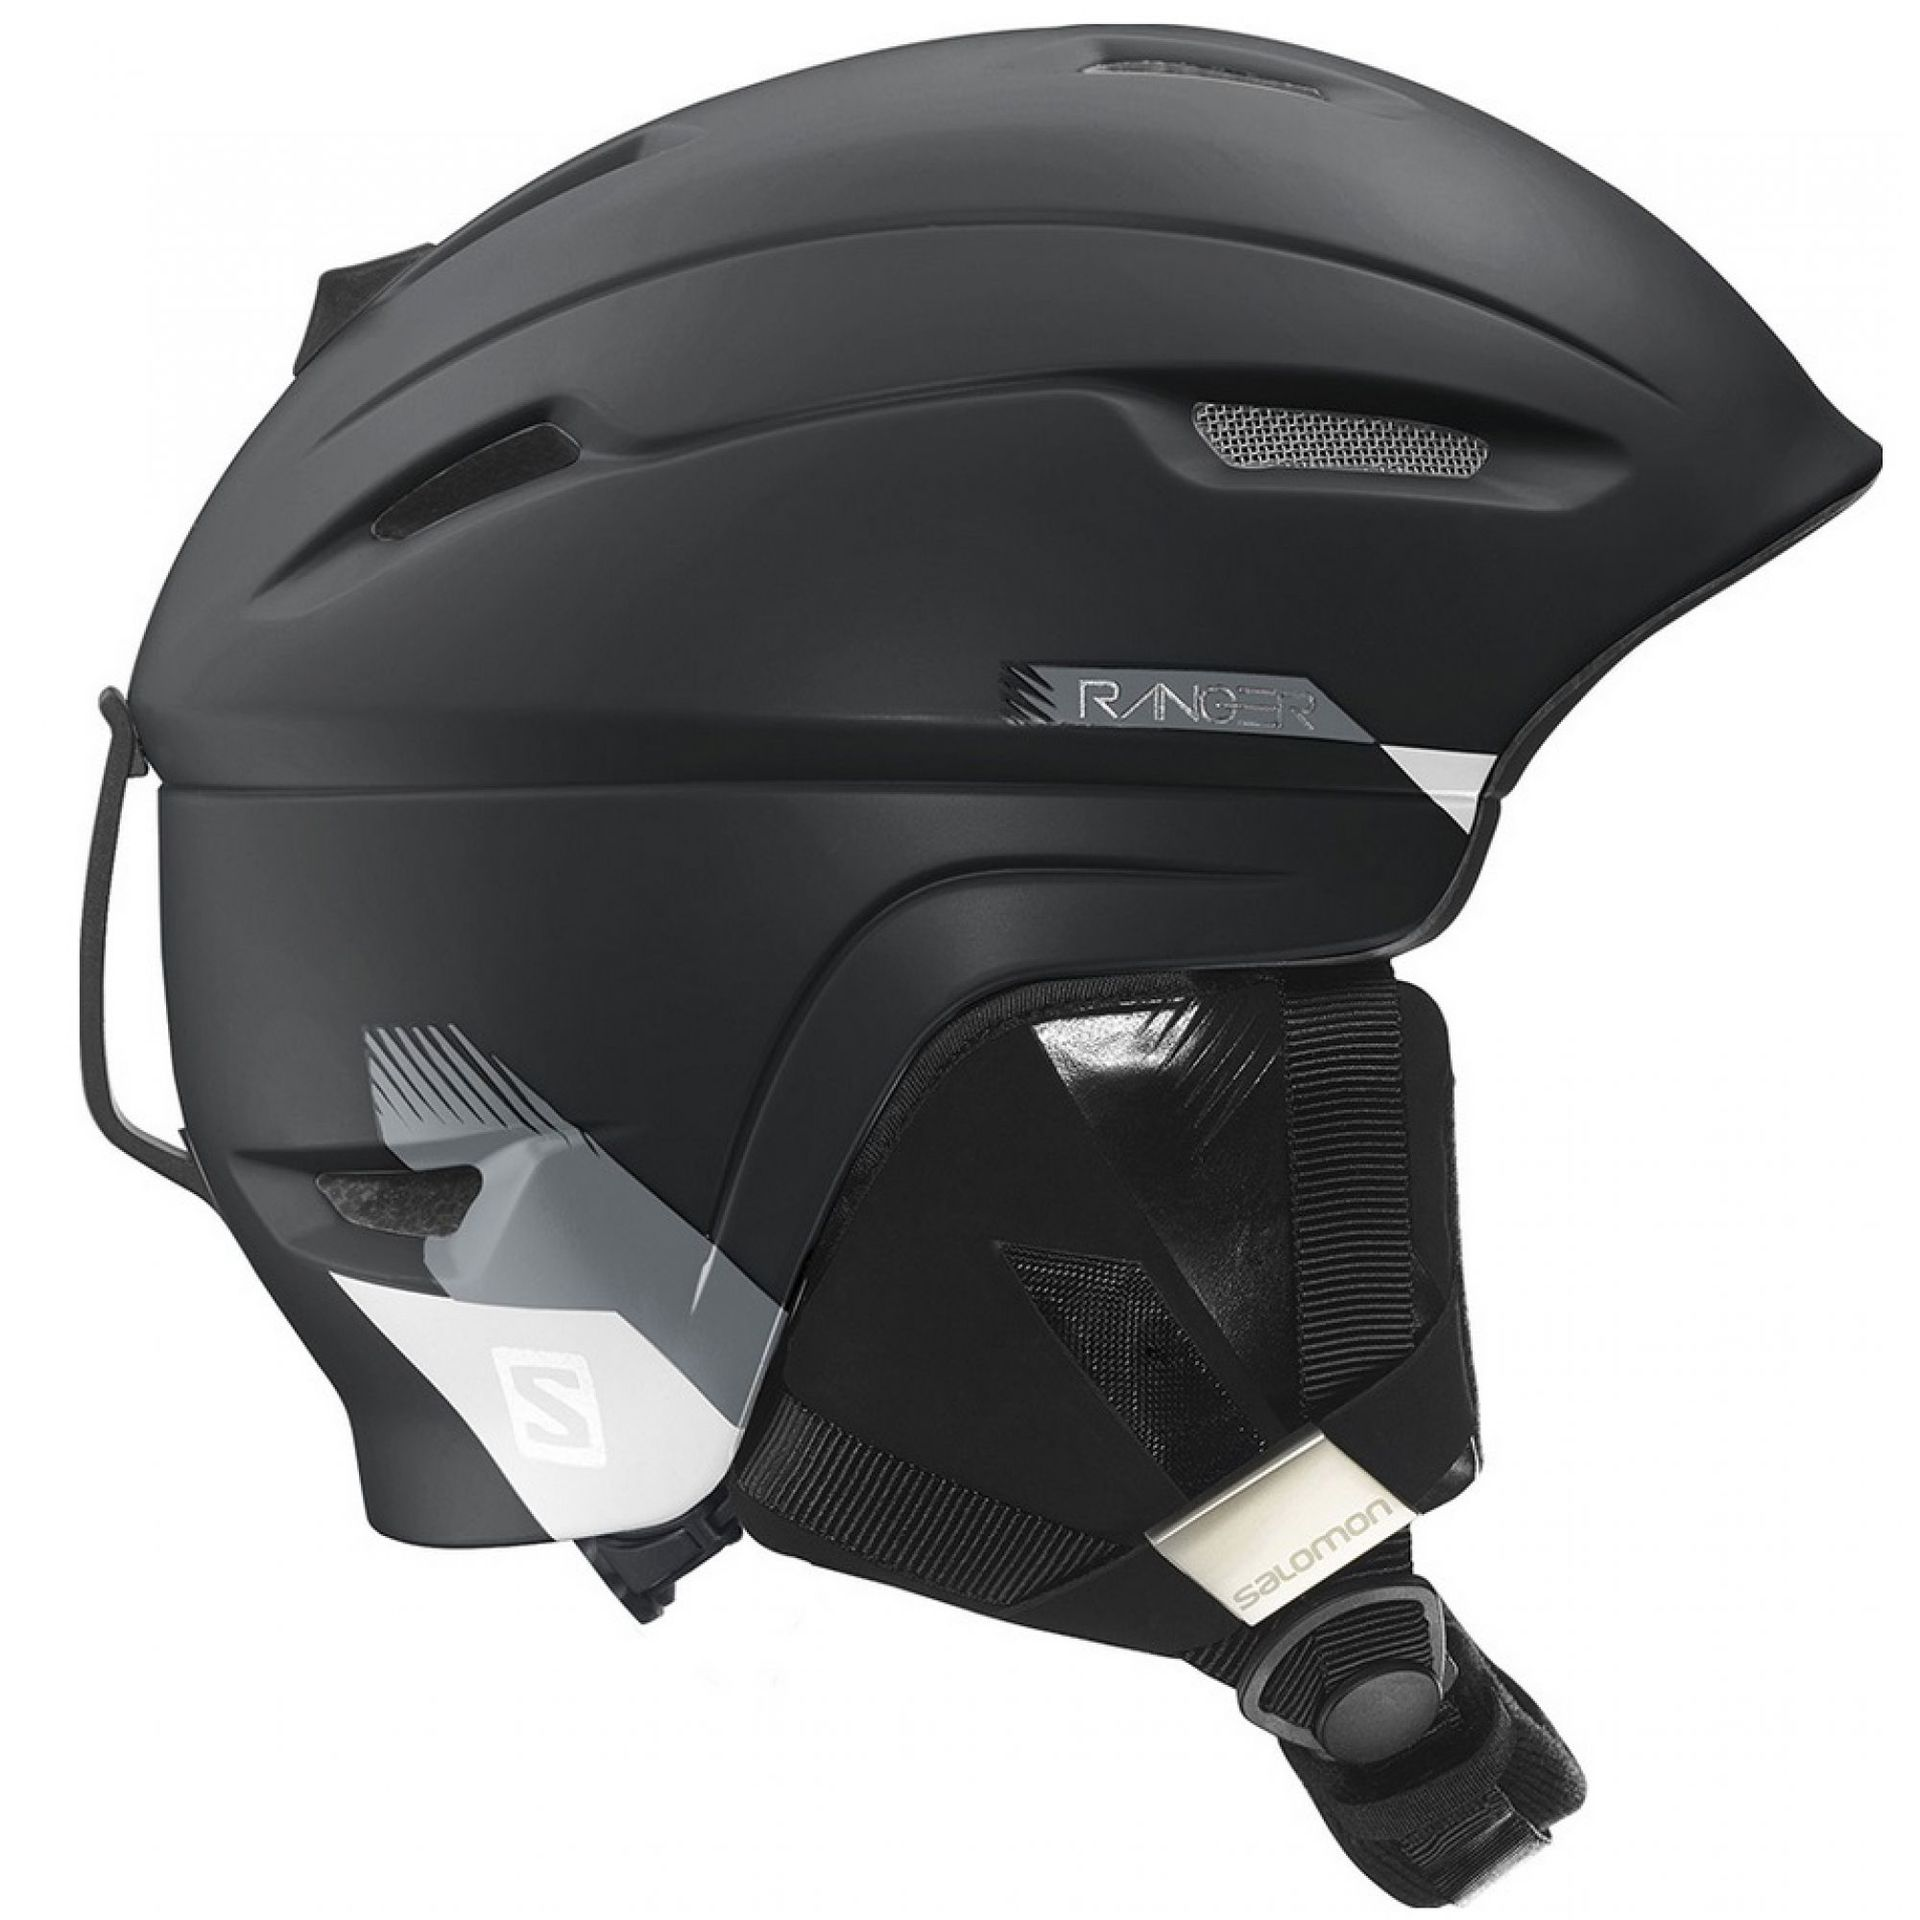 KASK SALOMON RANGER 4D BLACK MATT